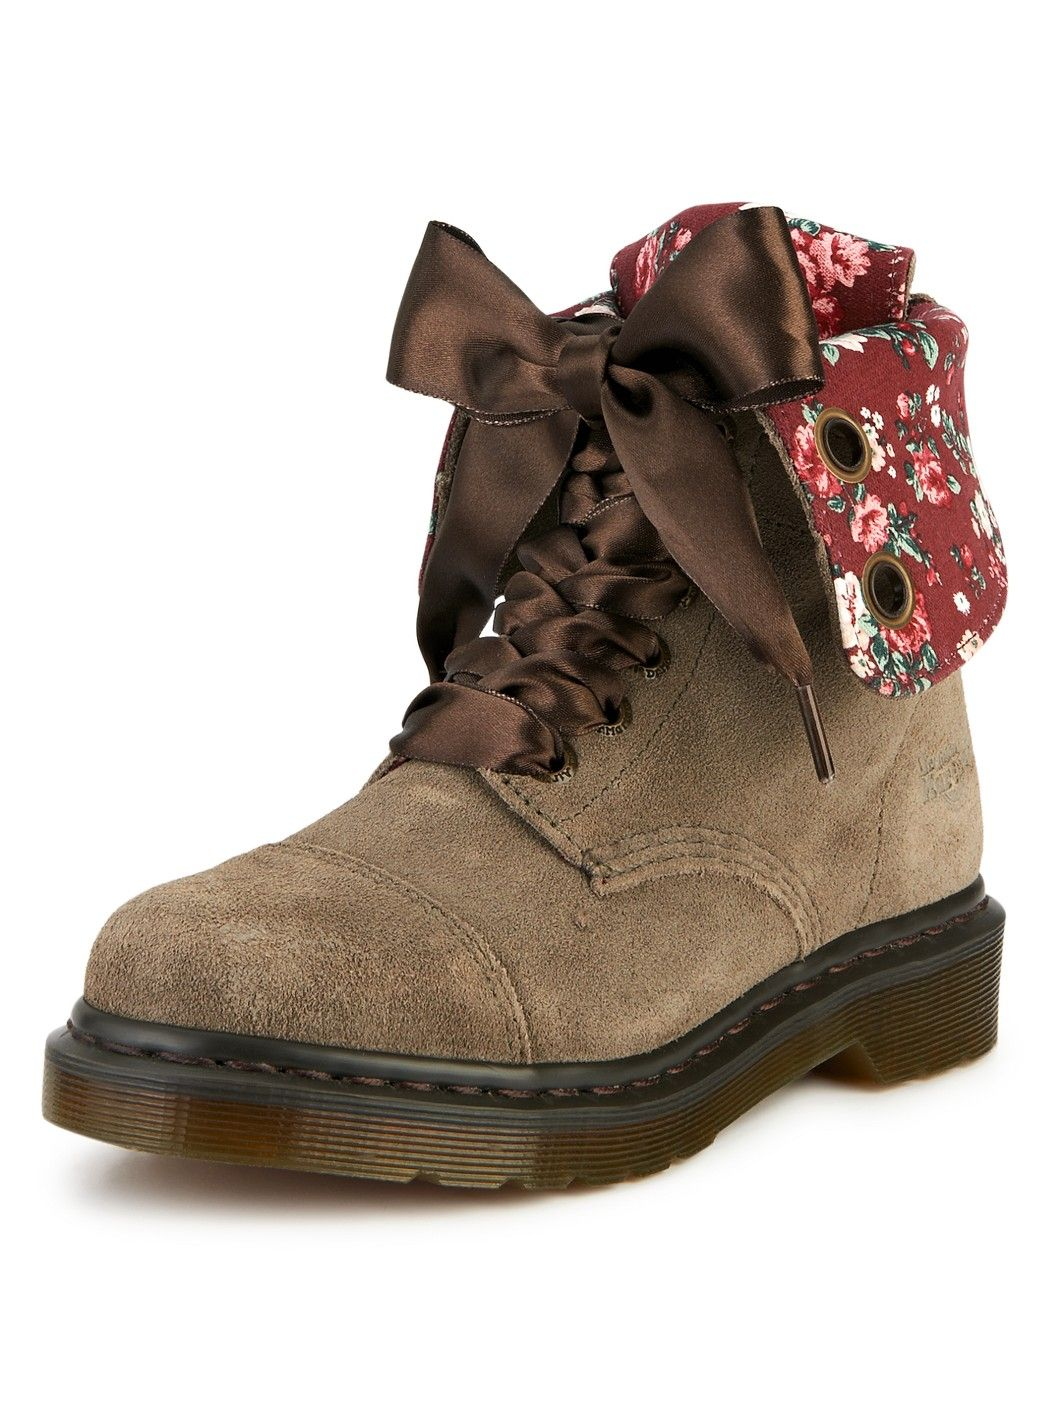 8de4fcc7e7 Dr Martens Aimilie Suede Fold Down Floral Line Boots - just ordered! Can t  wait to see them!!